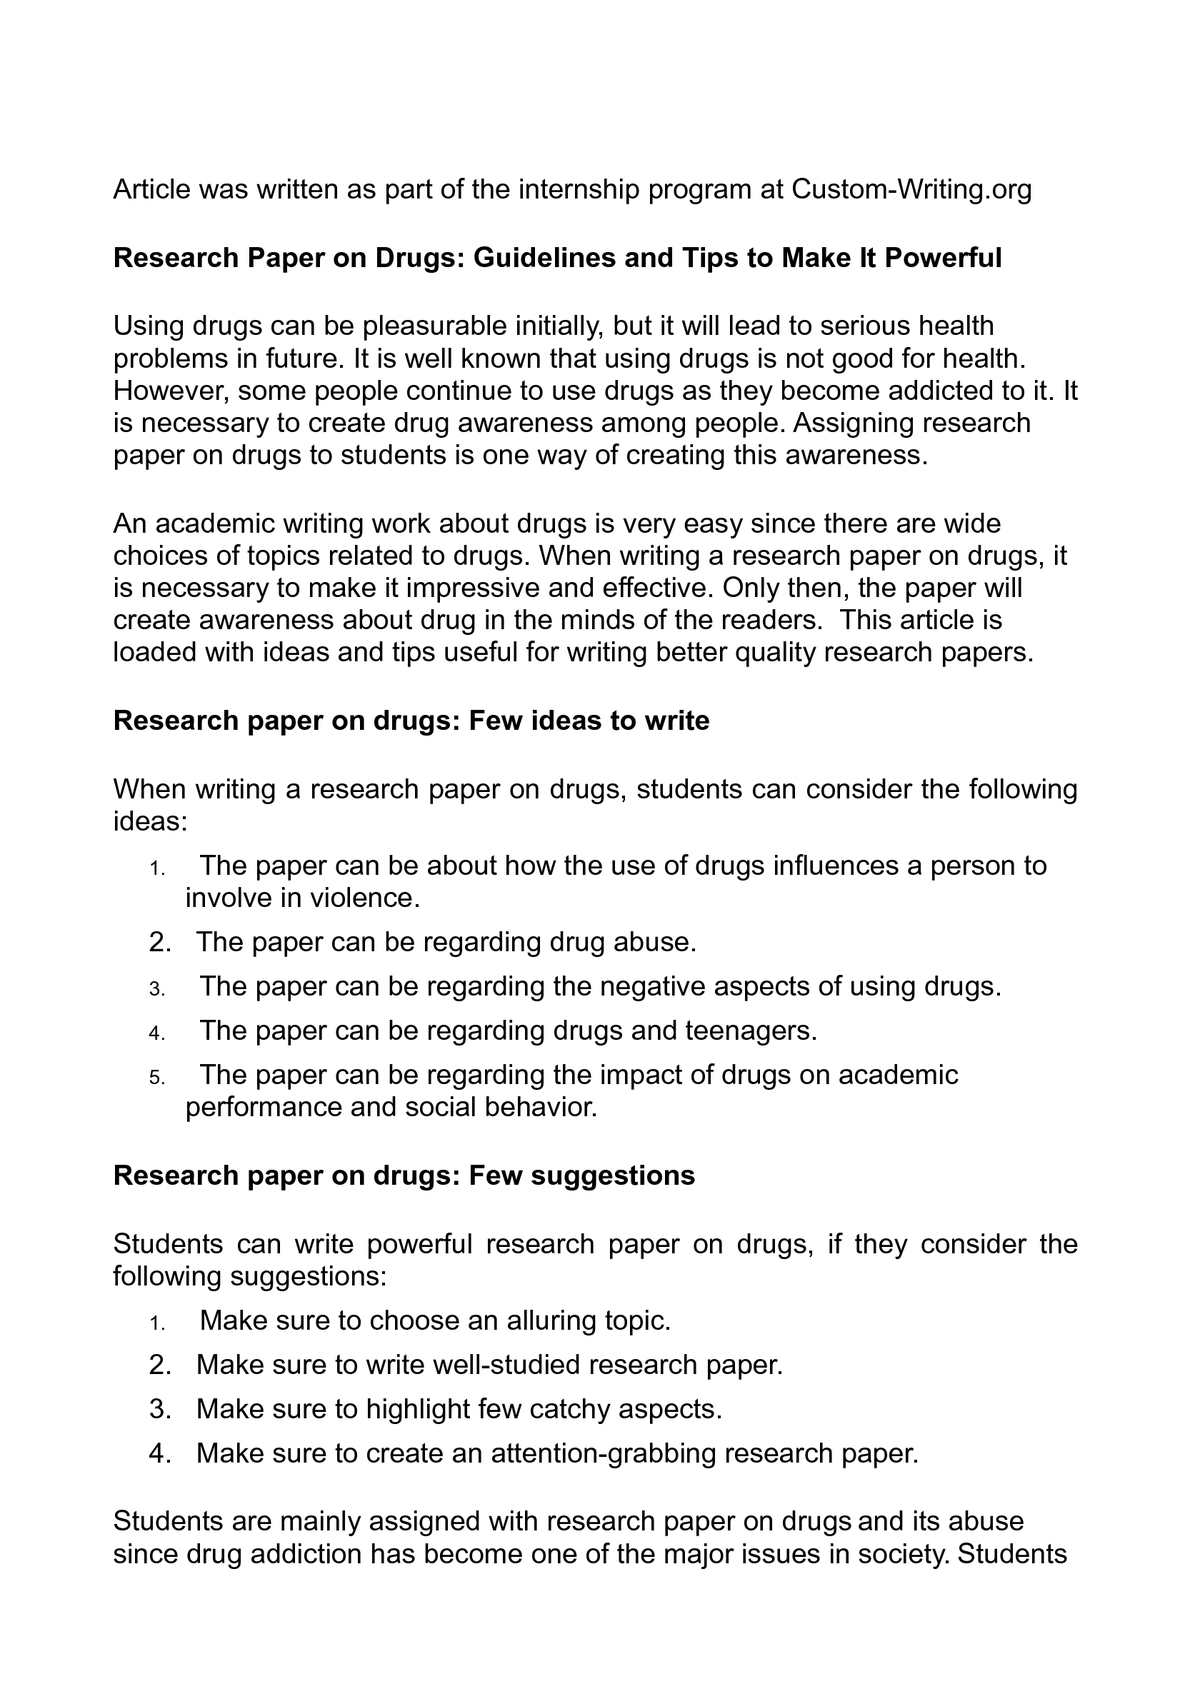 Research paper topics related to drugs